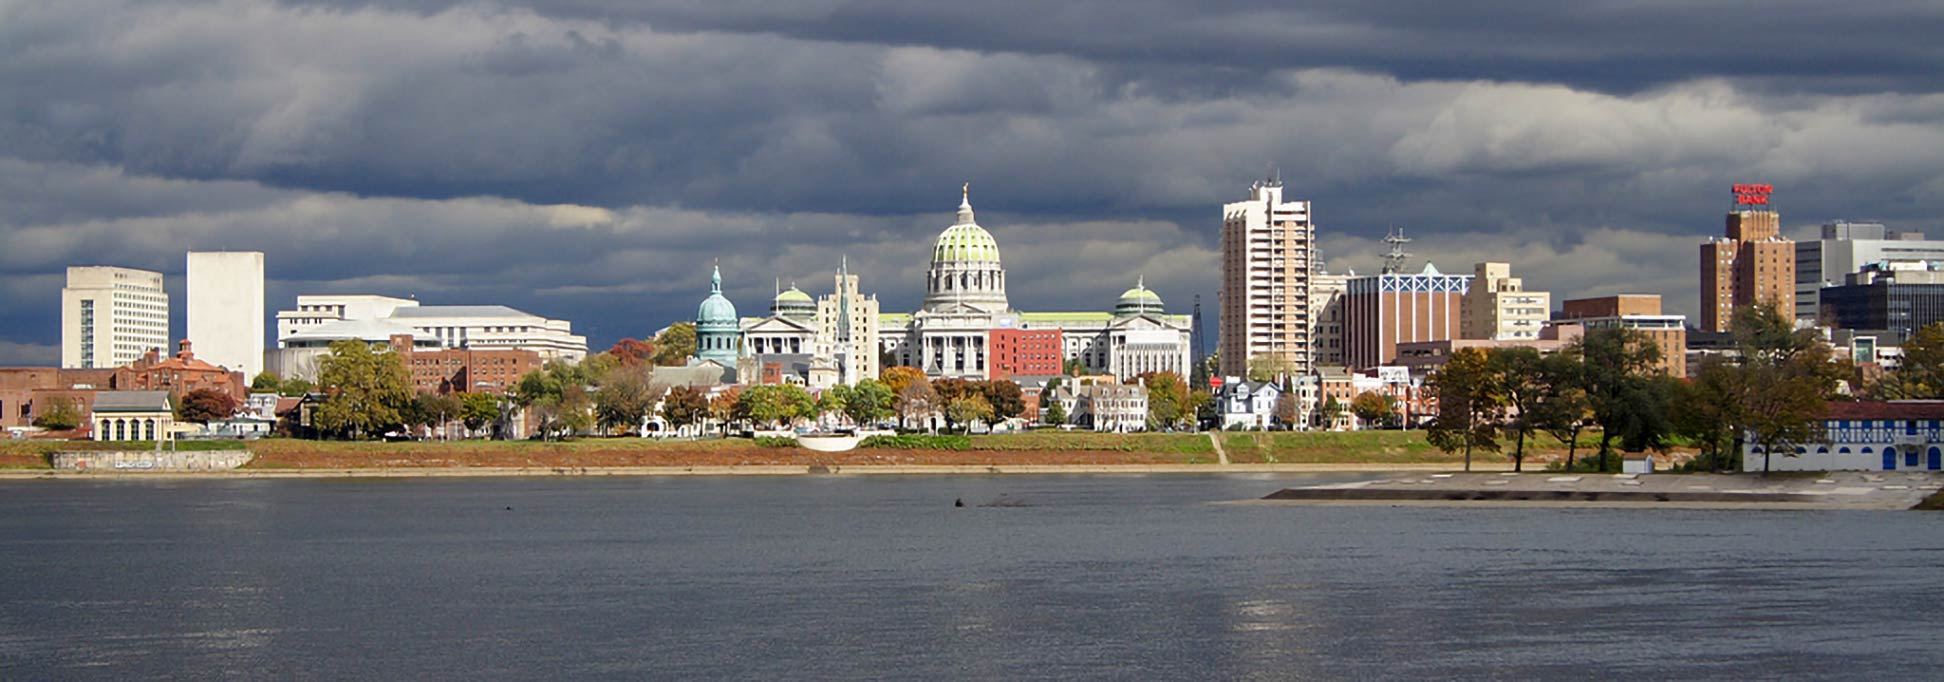 Harrisburg, capital of Pennsylvania, USA - Nations Online ... on kansas lake map, kansas statehood, kansas state teams, kansas map with all cities, kansas ks map, kansas transportation map, kansas history map, kansas university map, kansas state nickname, kansas capitol building map, kansas speedway map, missouri capitol map, kansas hunting map, kansas state building, colorado capitol map, kansas state flower, kansas state population 2015, kansas state house, kansas capitol dome, kansas snow map,